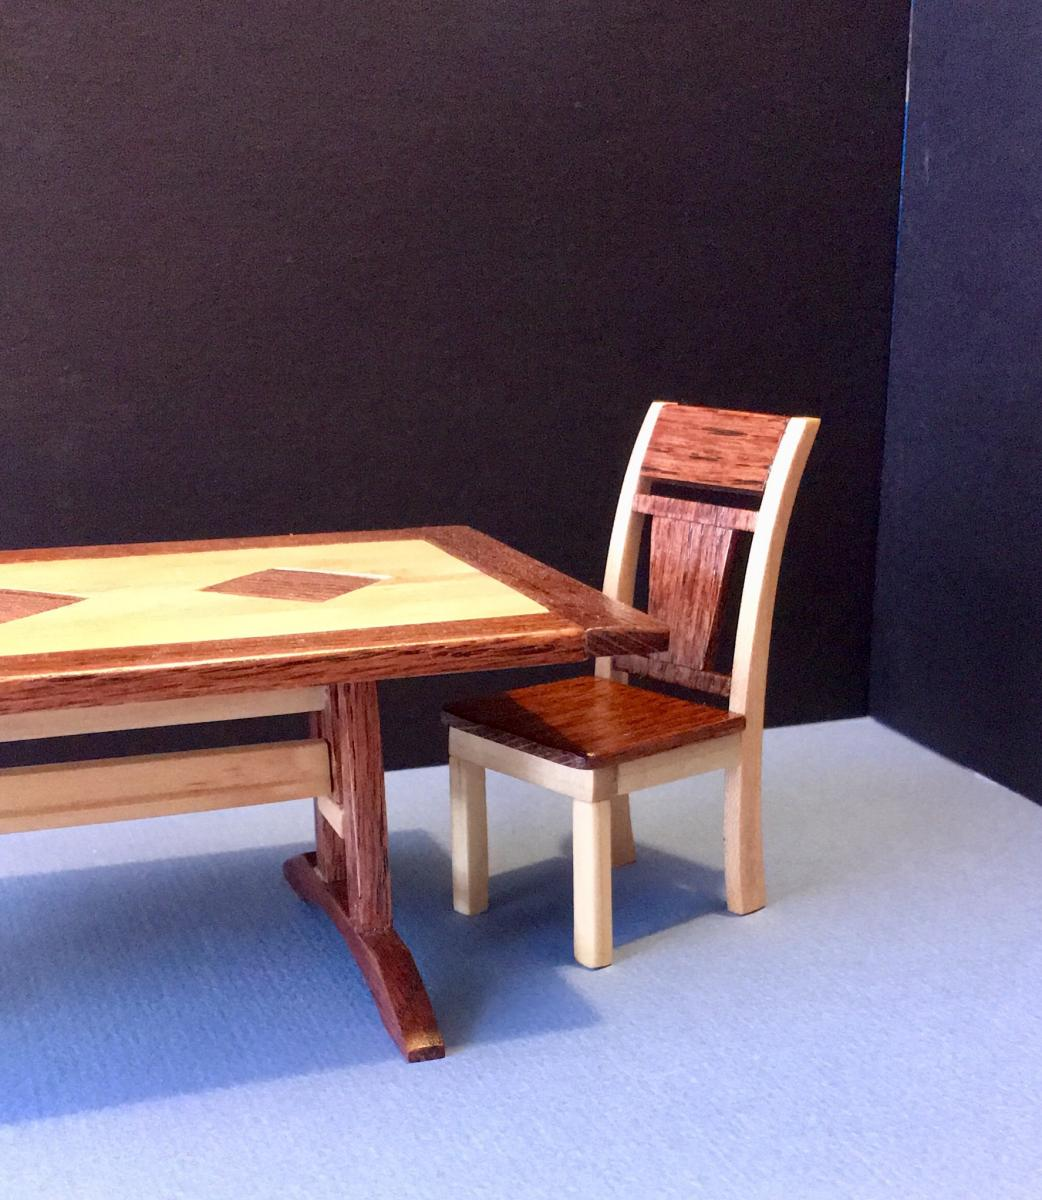 Oak table and chair